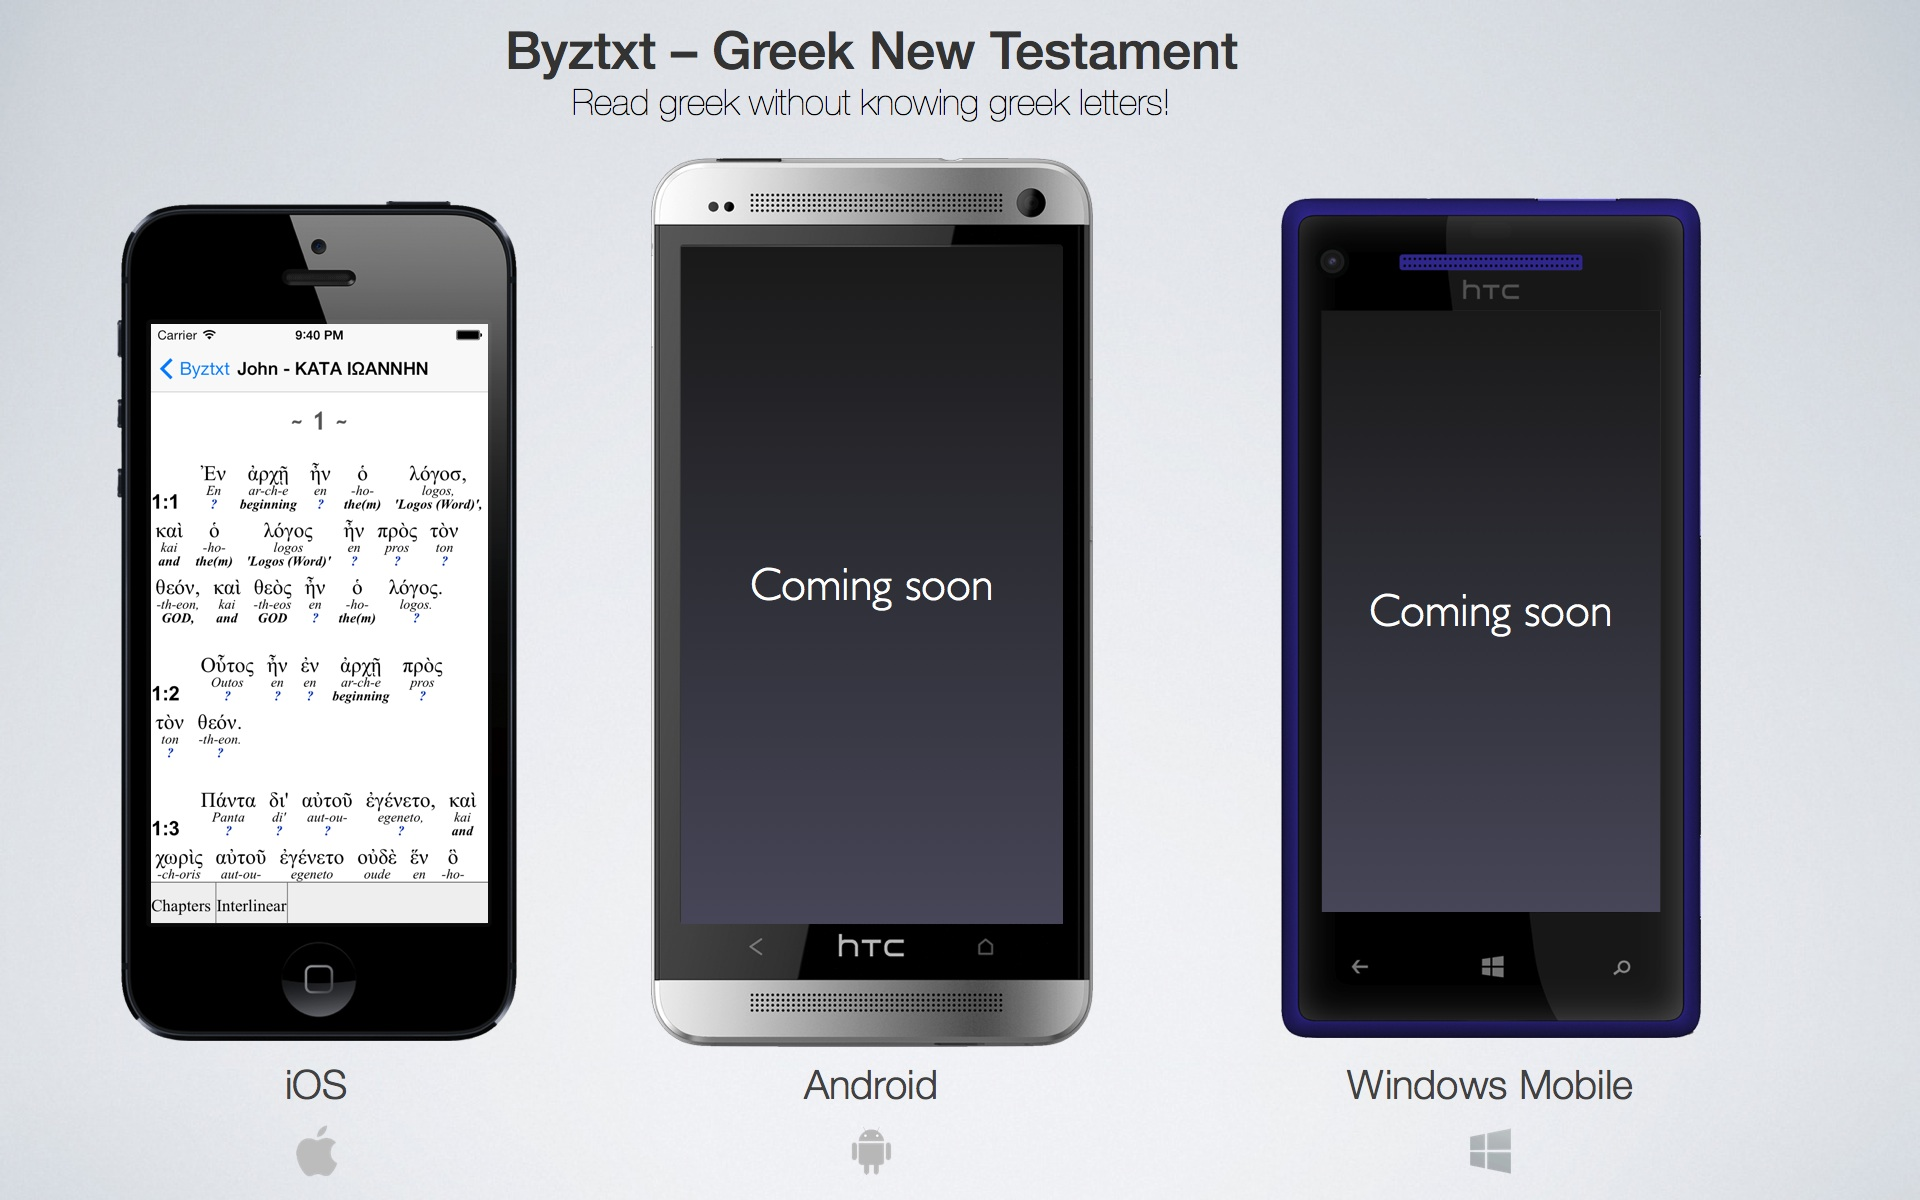 Byztxt - Greek New Testament